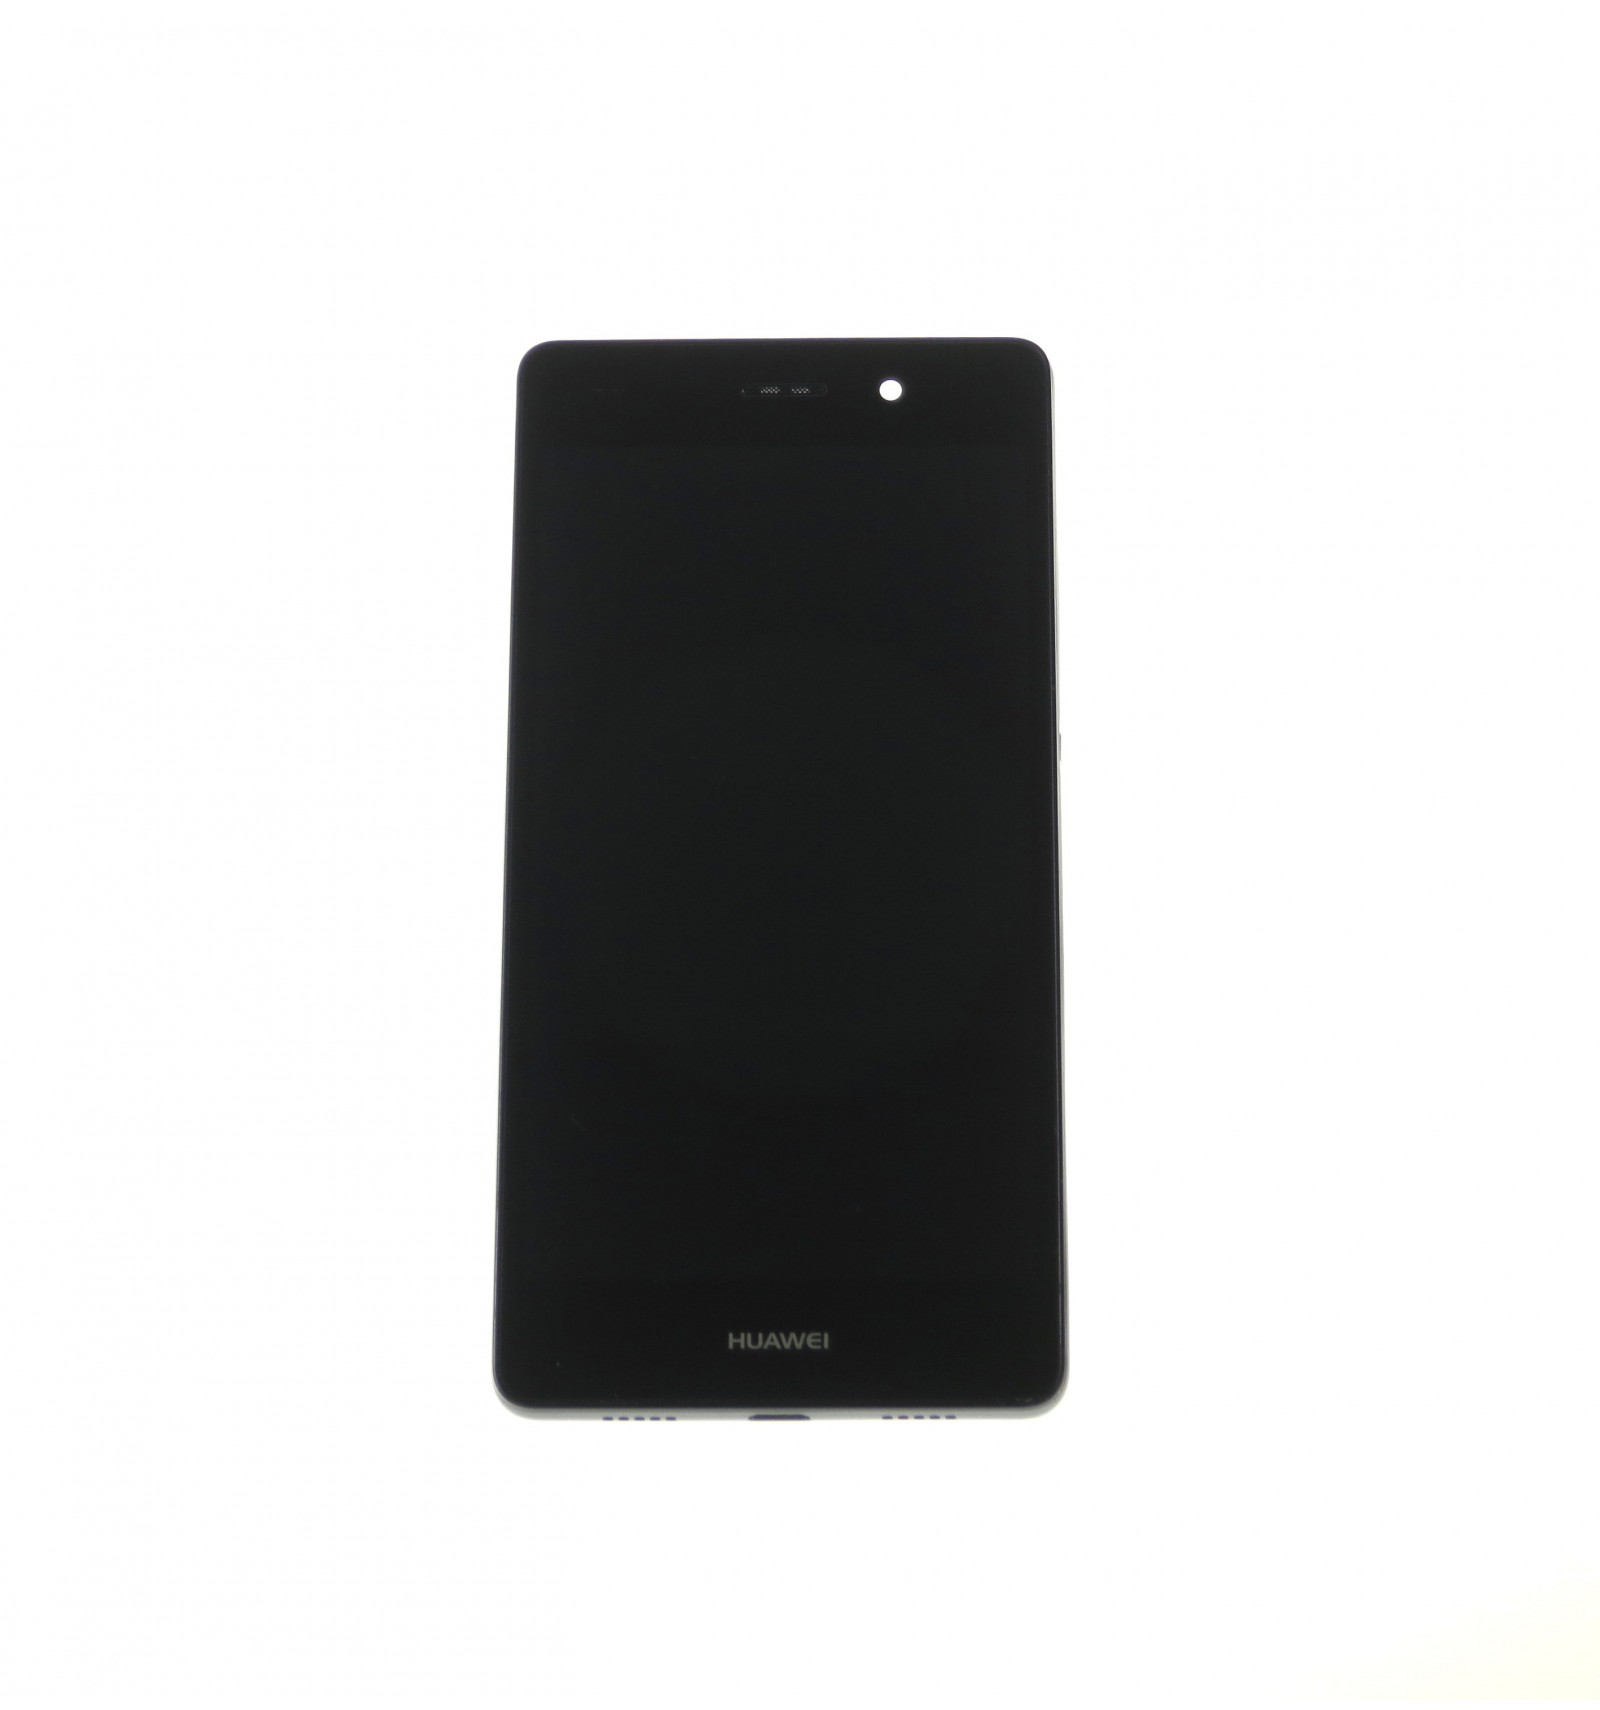 Lcd Touch Screen Front Panel Black Oem For Huawei P8 Lite Ale Samsung Galaxy Grand Neo Plus 3v1 Cierna